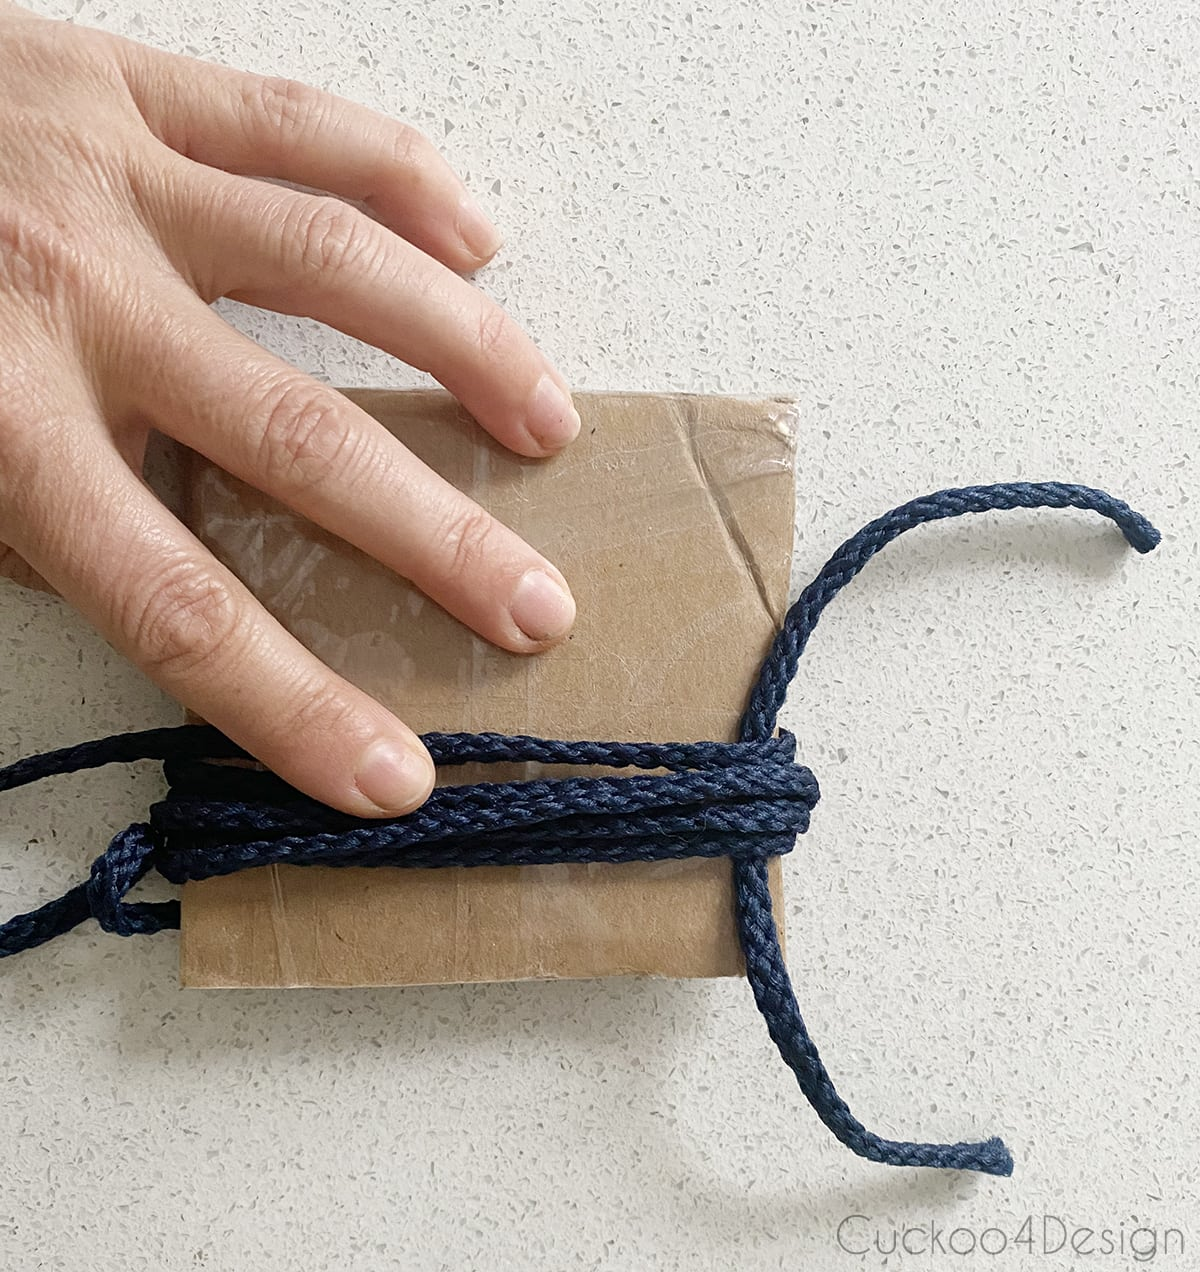 starting the tassel by wrapping yarn around cardboard